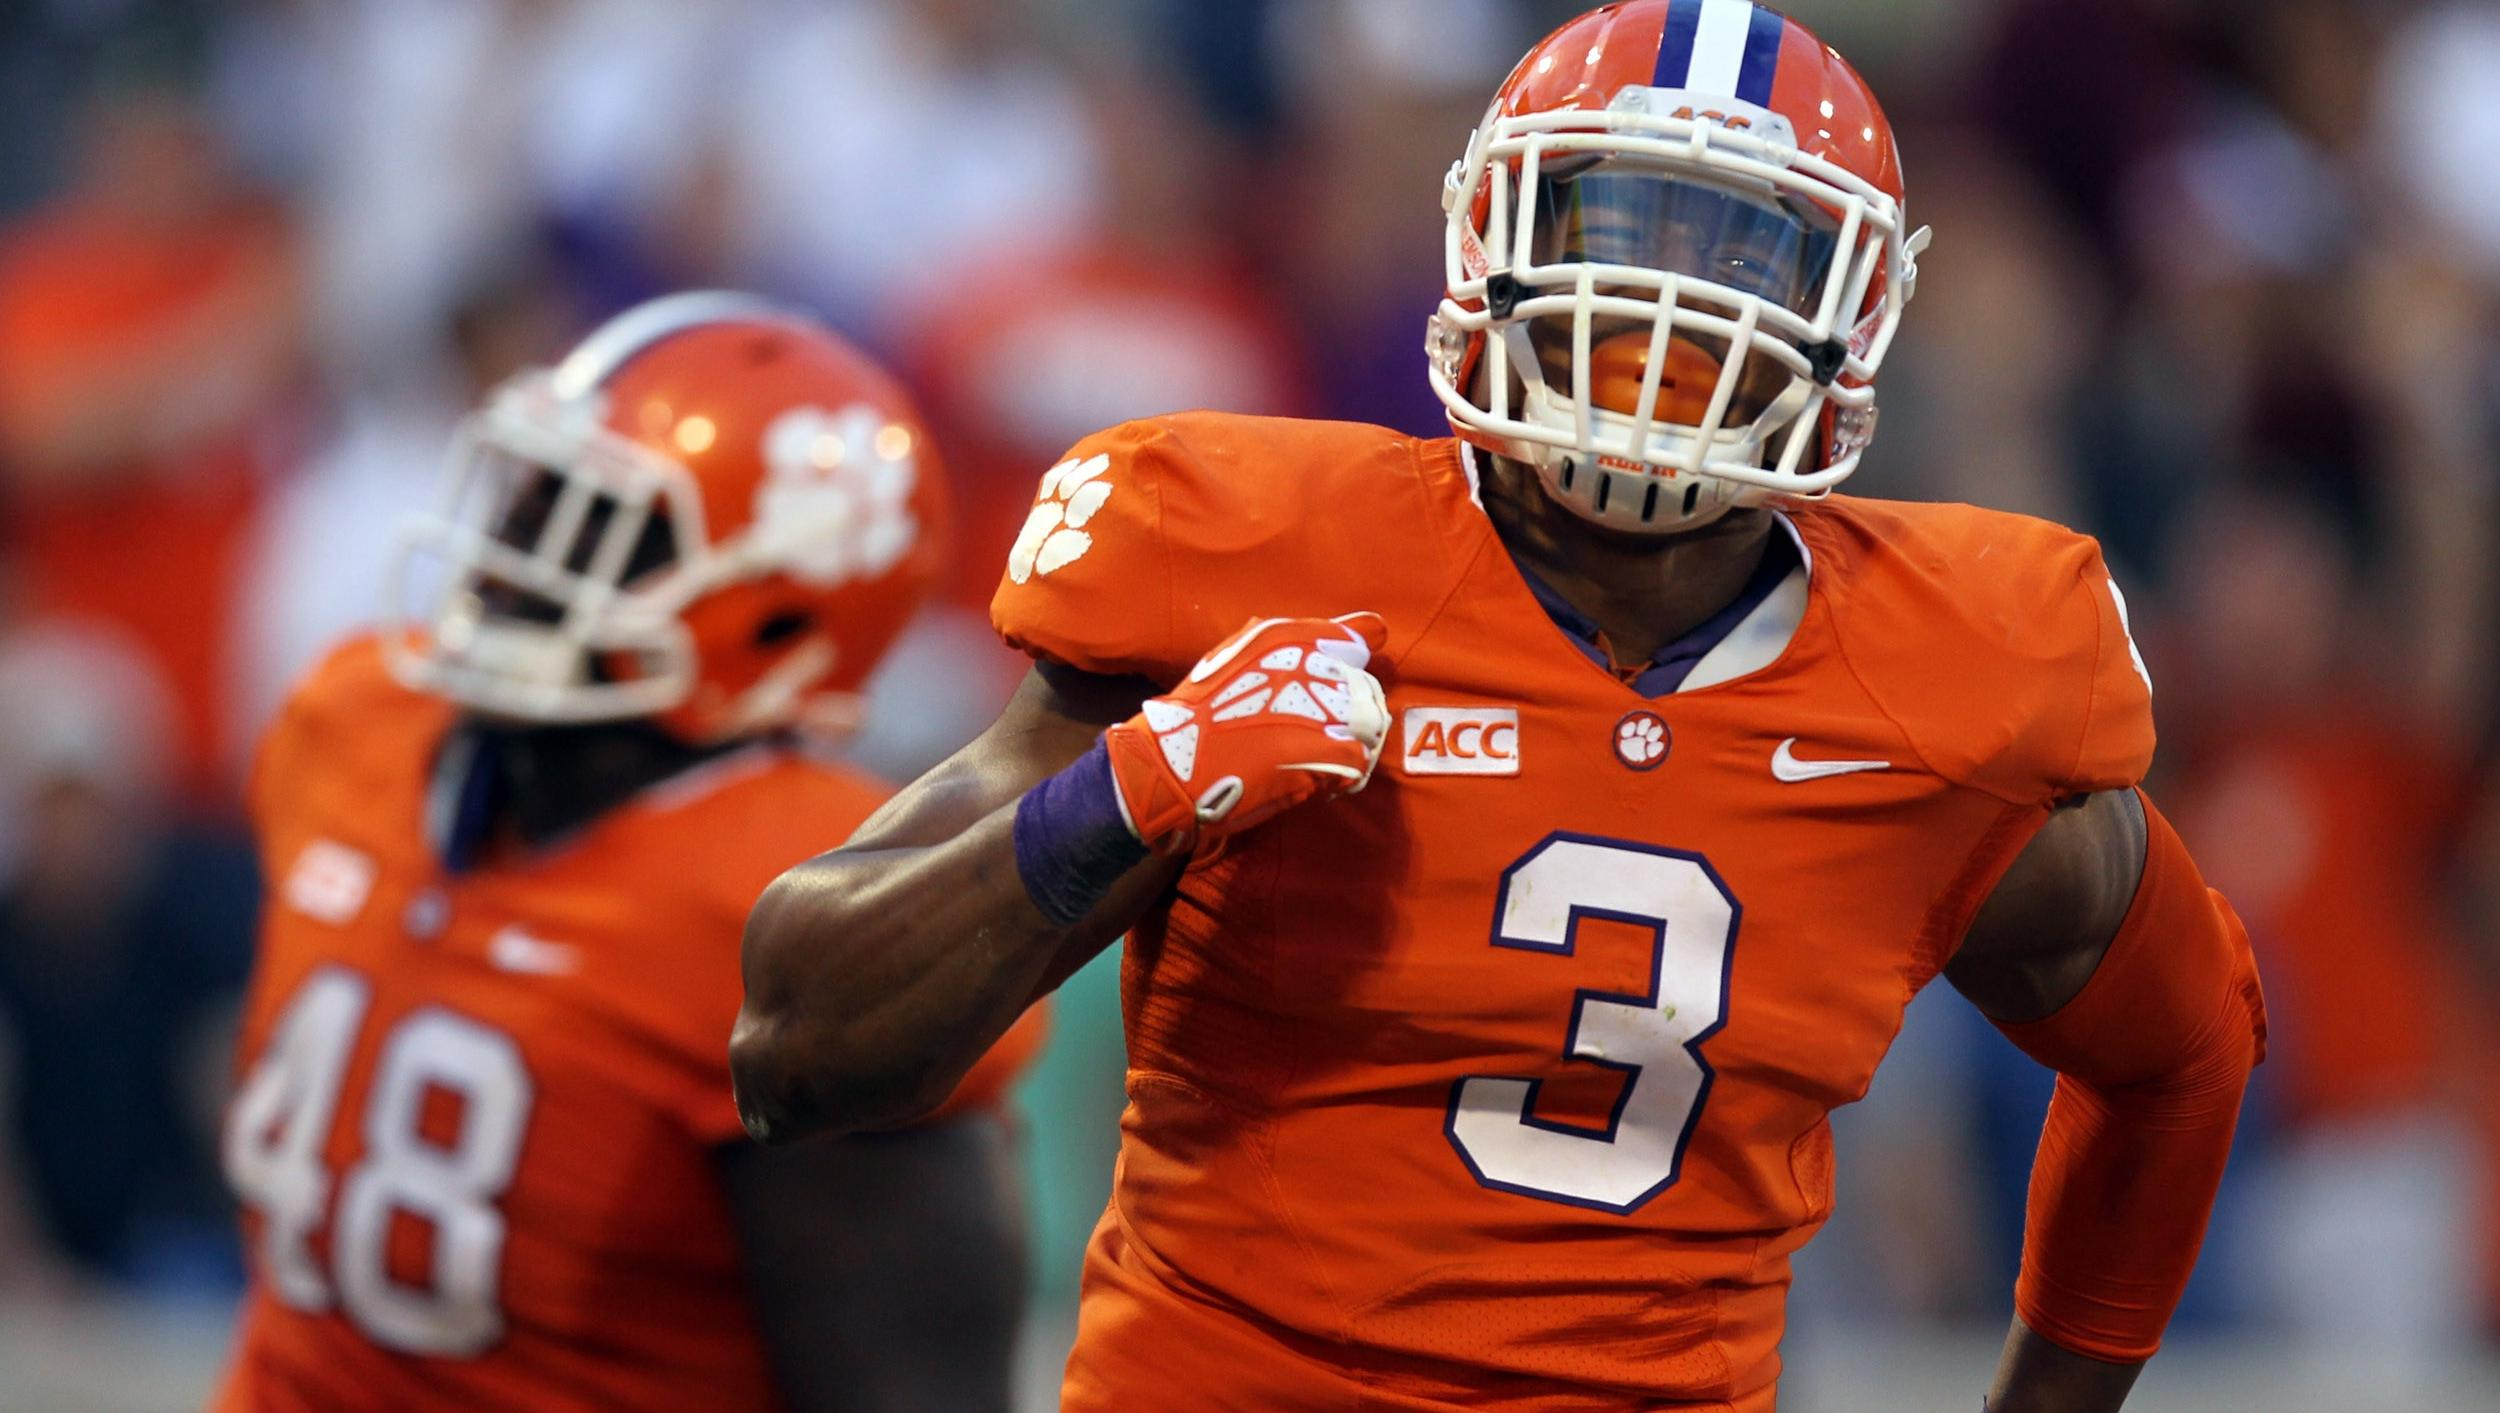 WATCH: Clemson Football 2013 Season Highlight Video